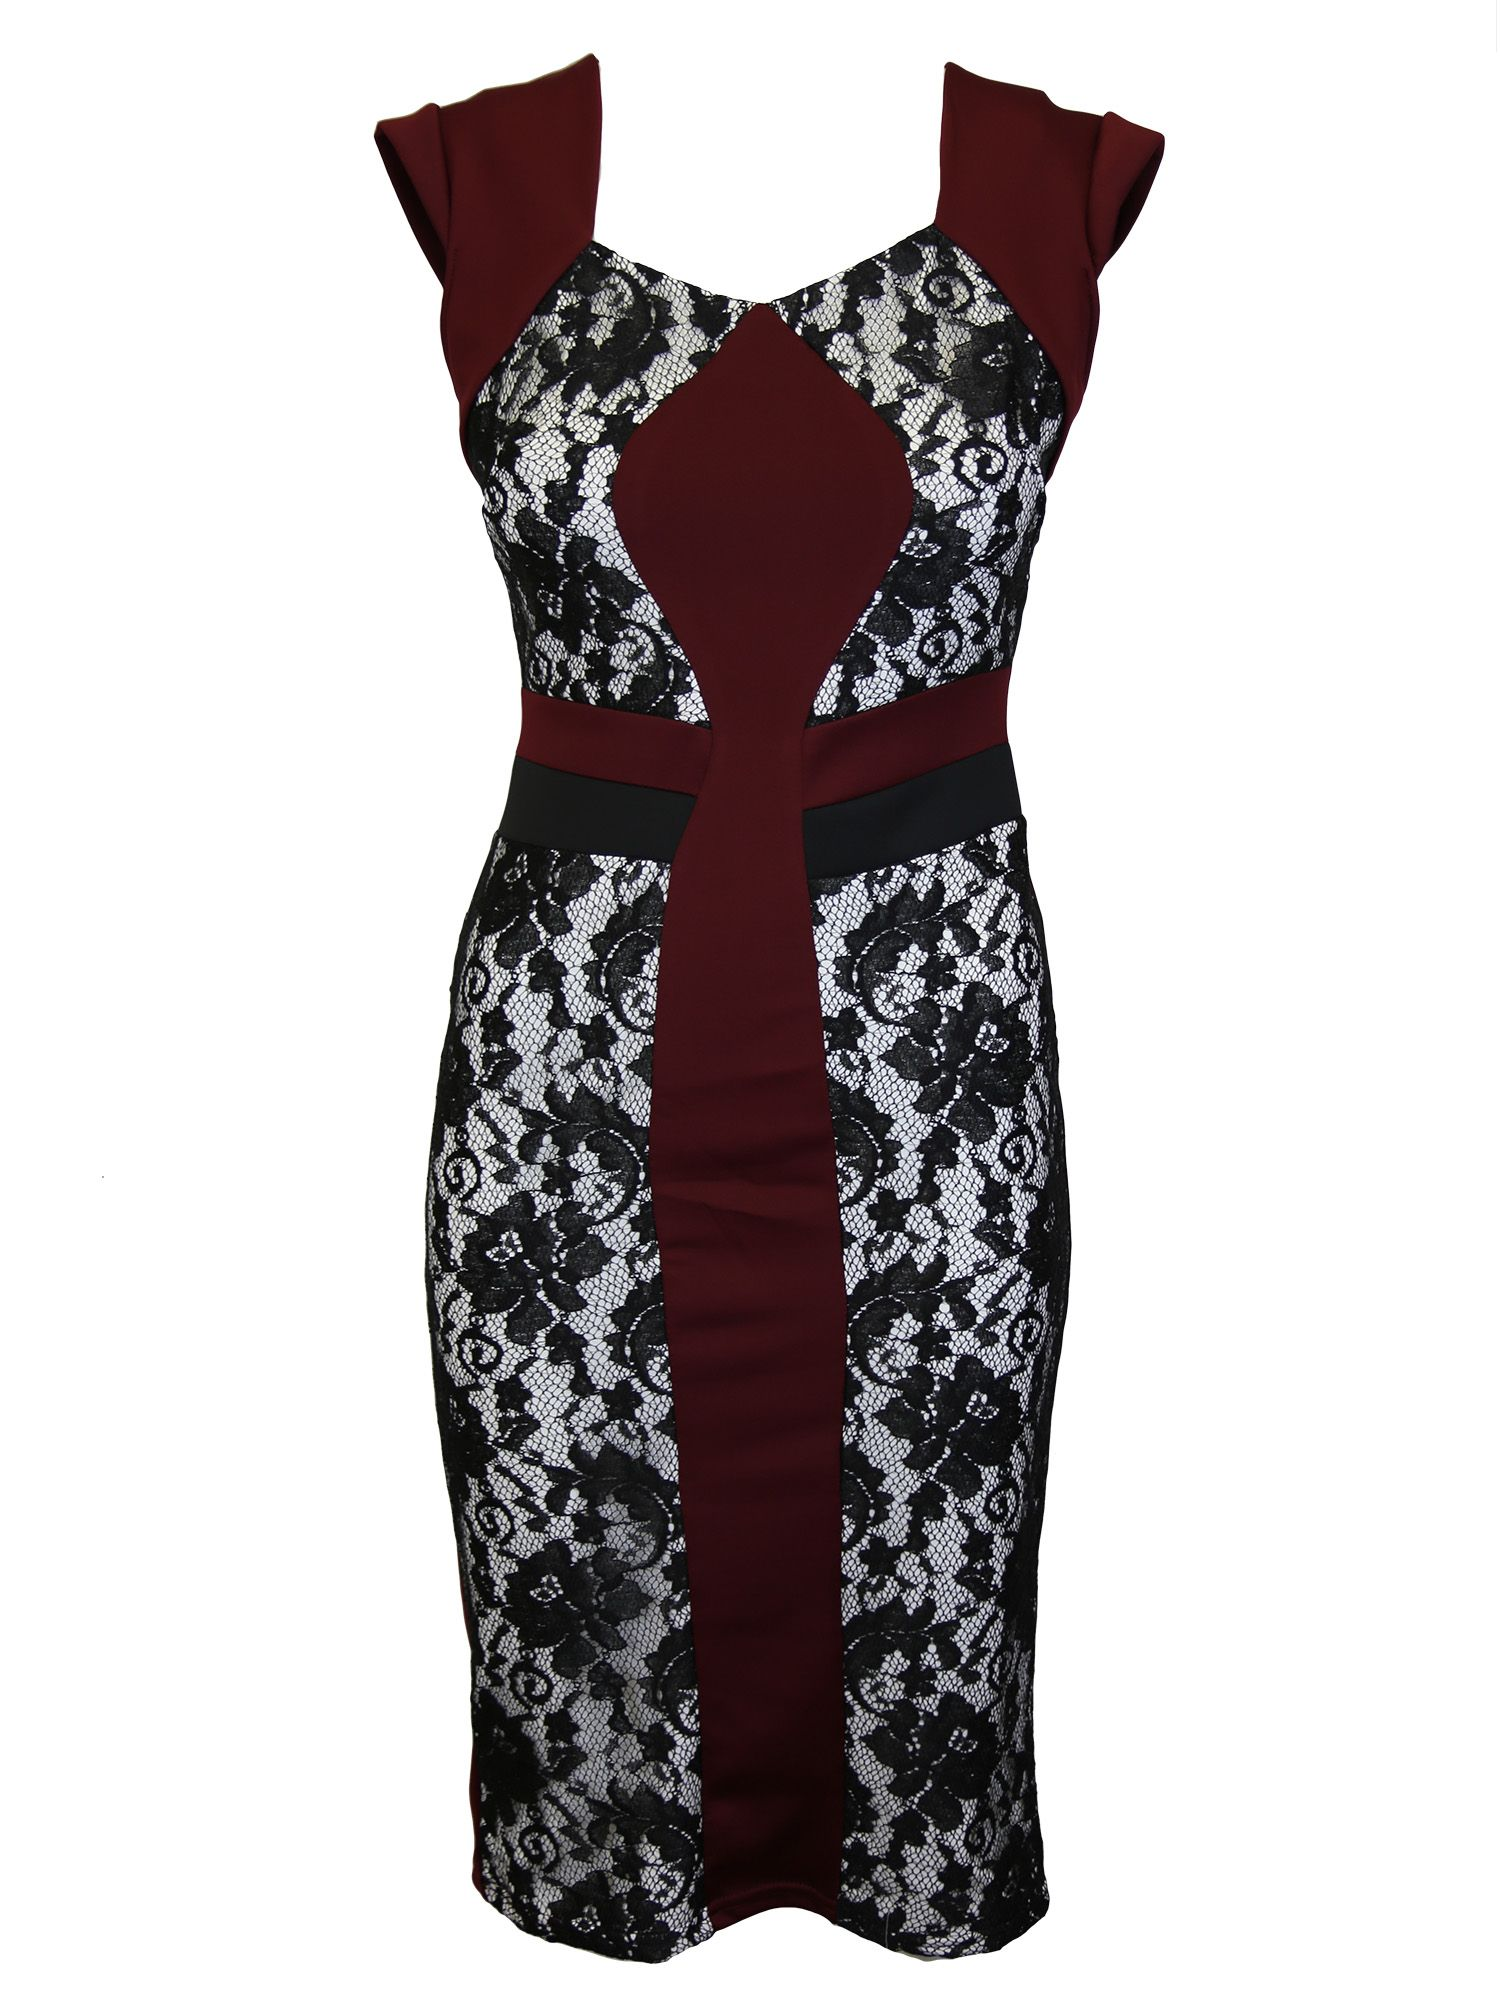 Feverfish Feverfish Lace Contrast Dress, Red